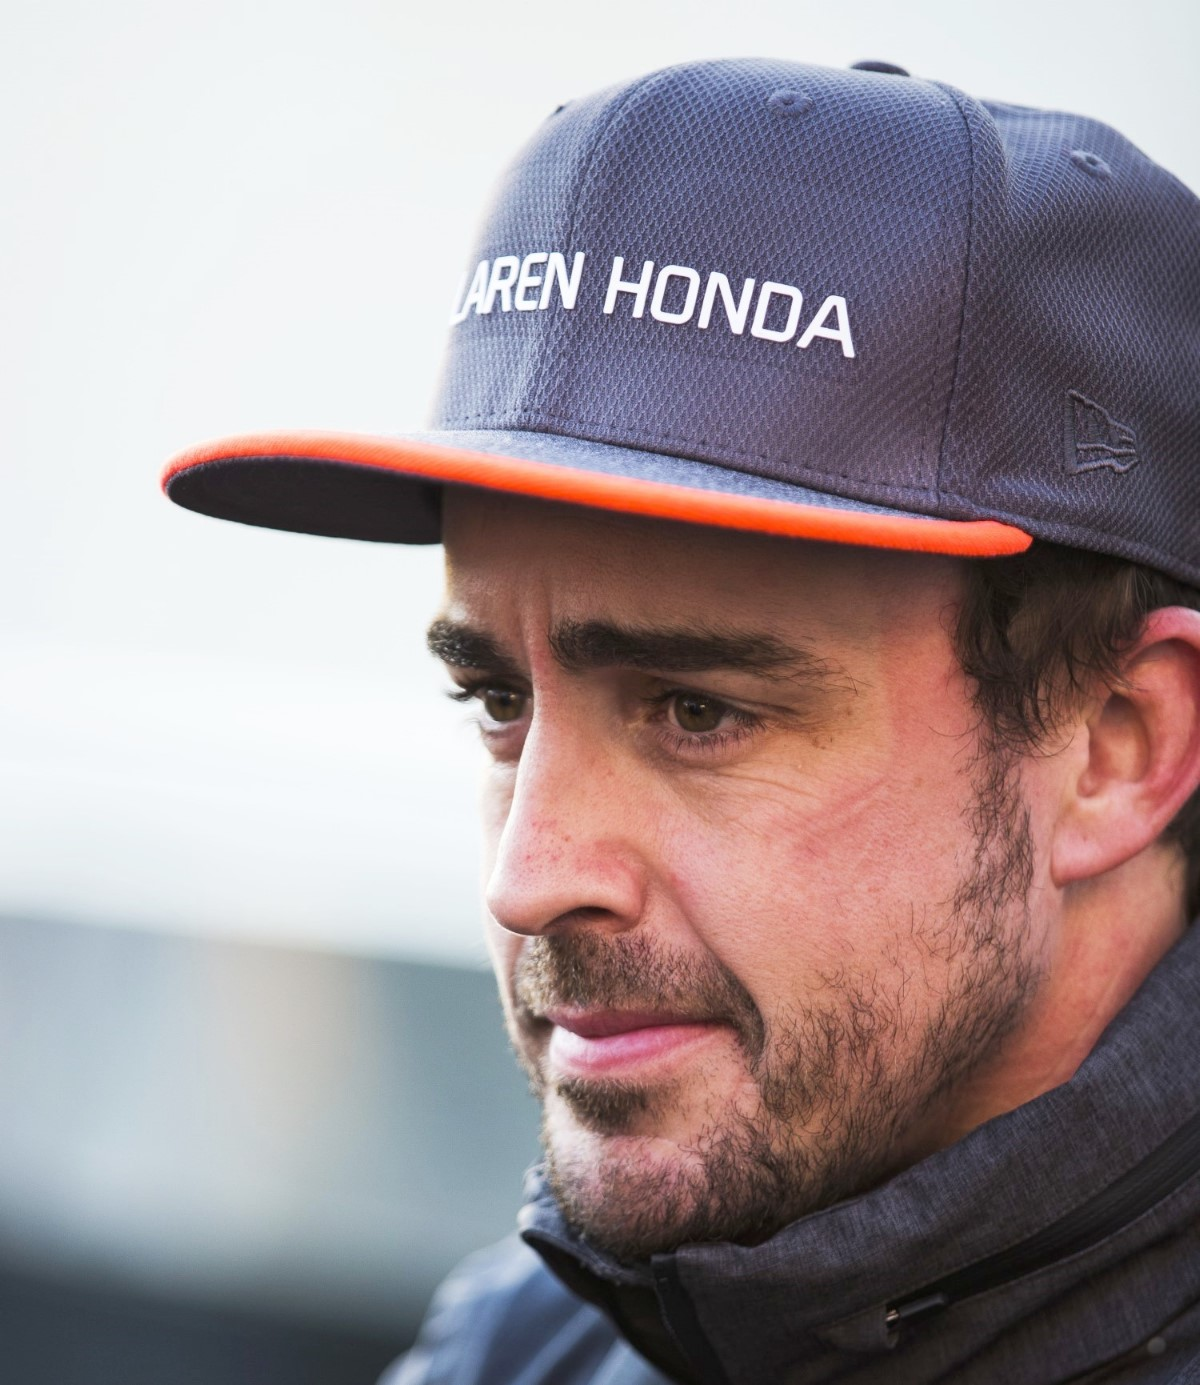 It appears Alonso will be driving a Honda powered car again in 2018